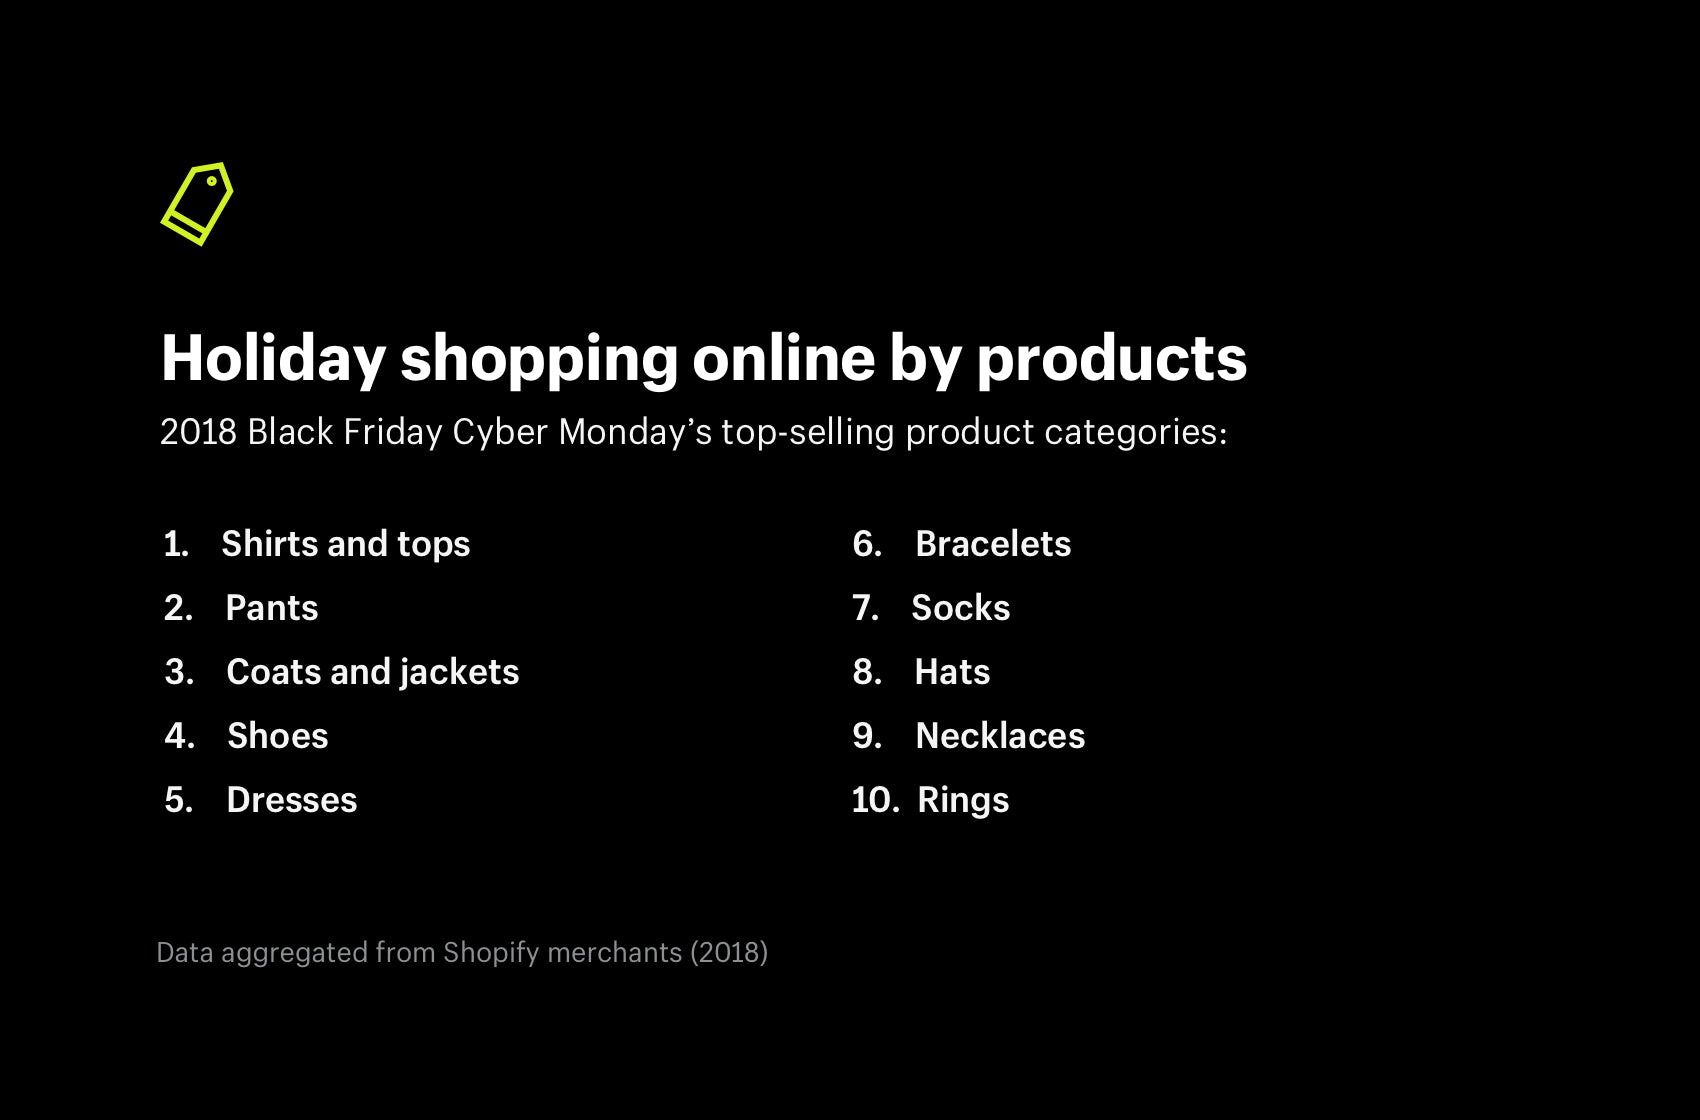 Holiday shopping online by products in 2018